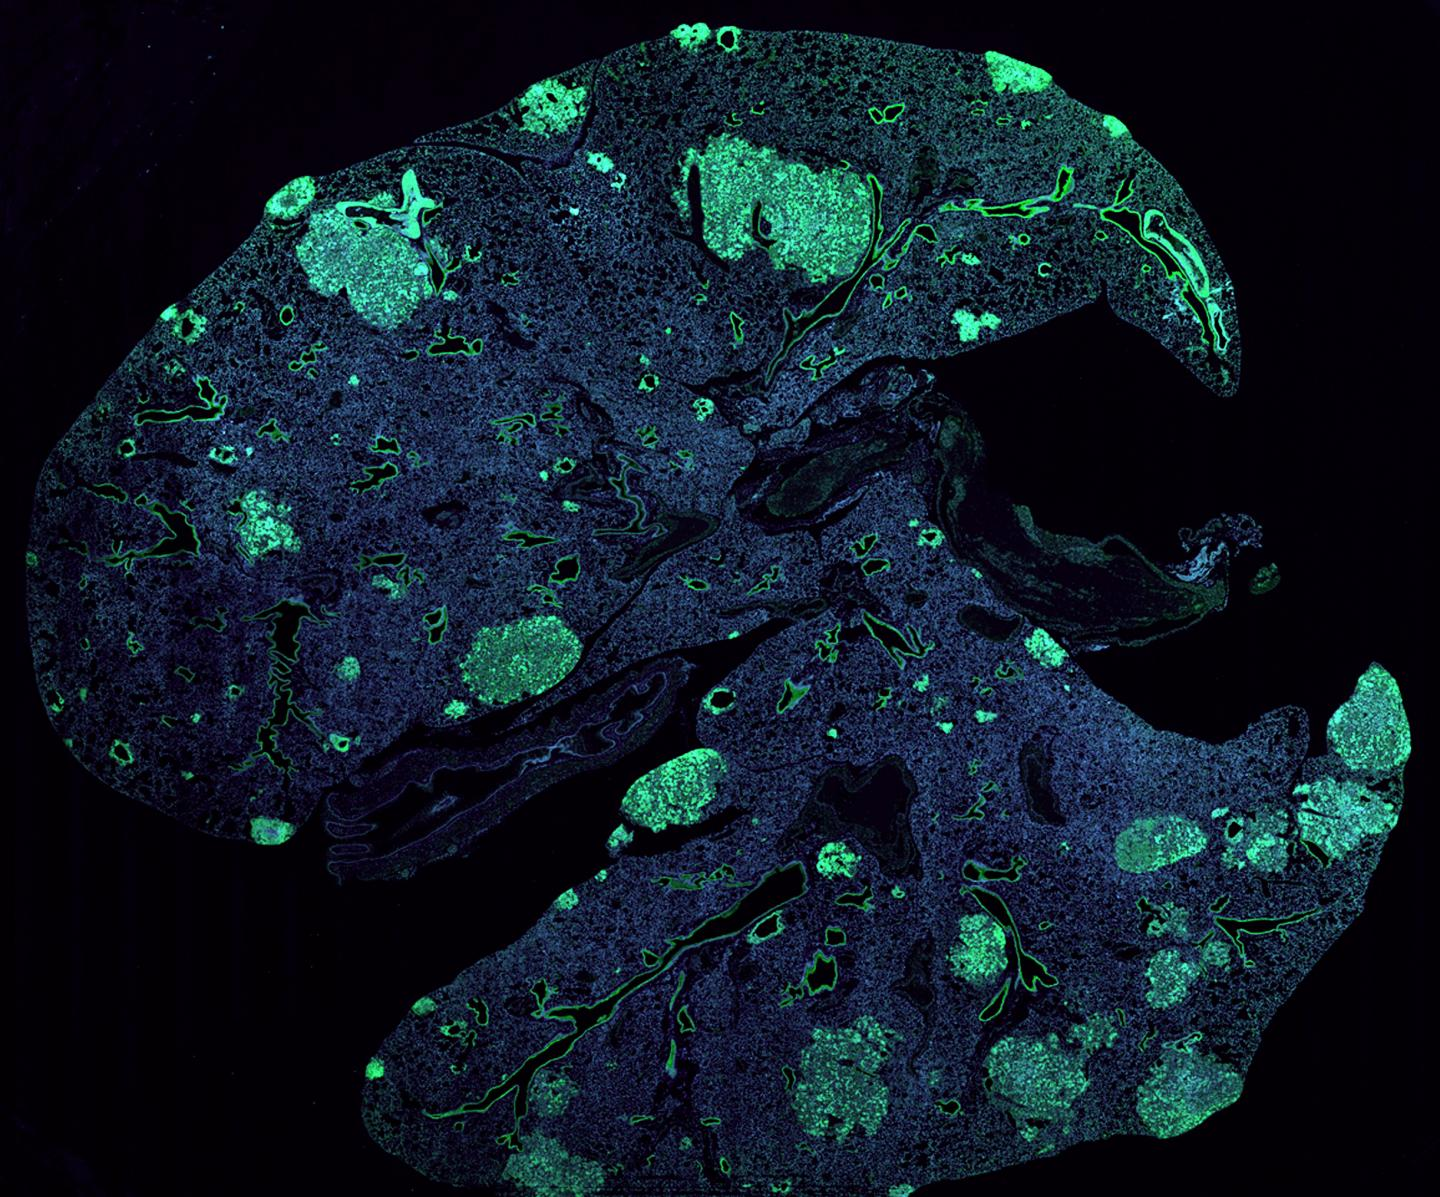 Cancer Cells Seize Signaling Pathway Used by Neurons to Metastasize